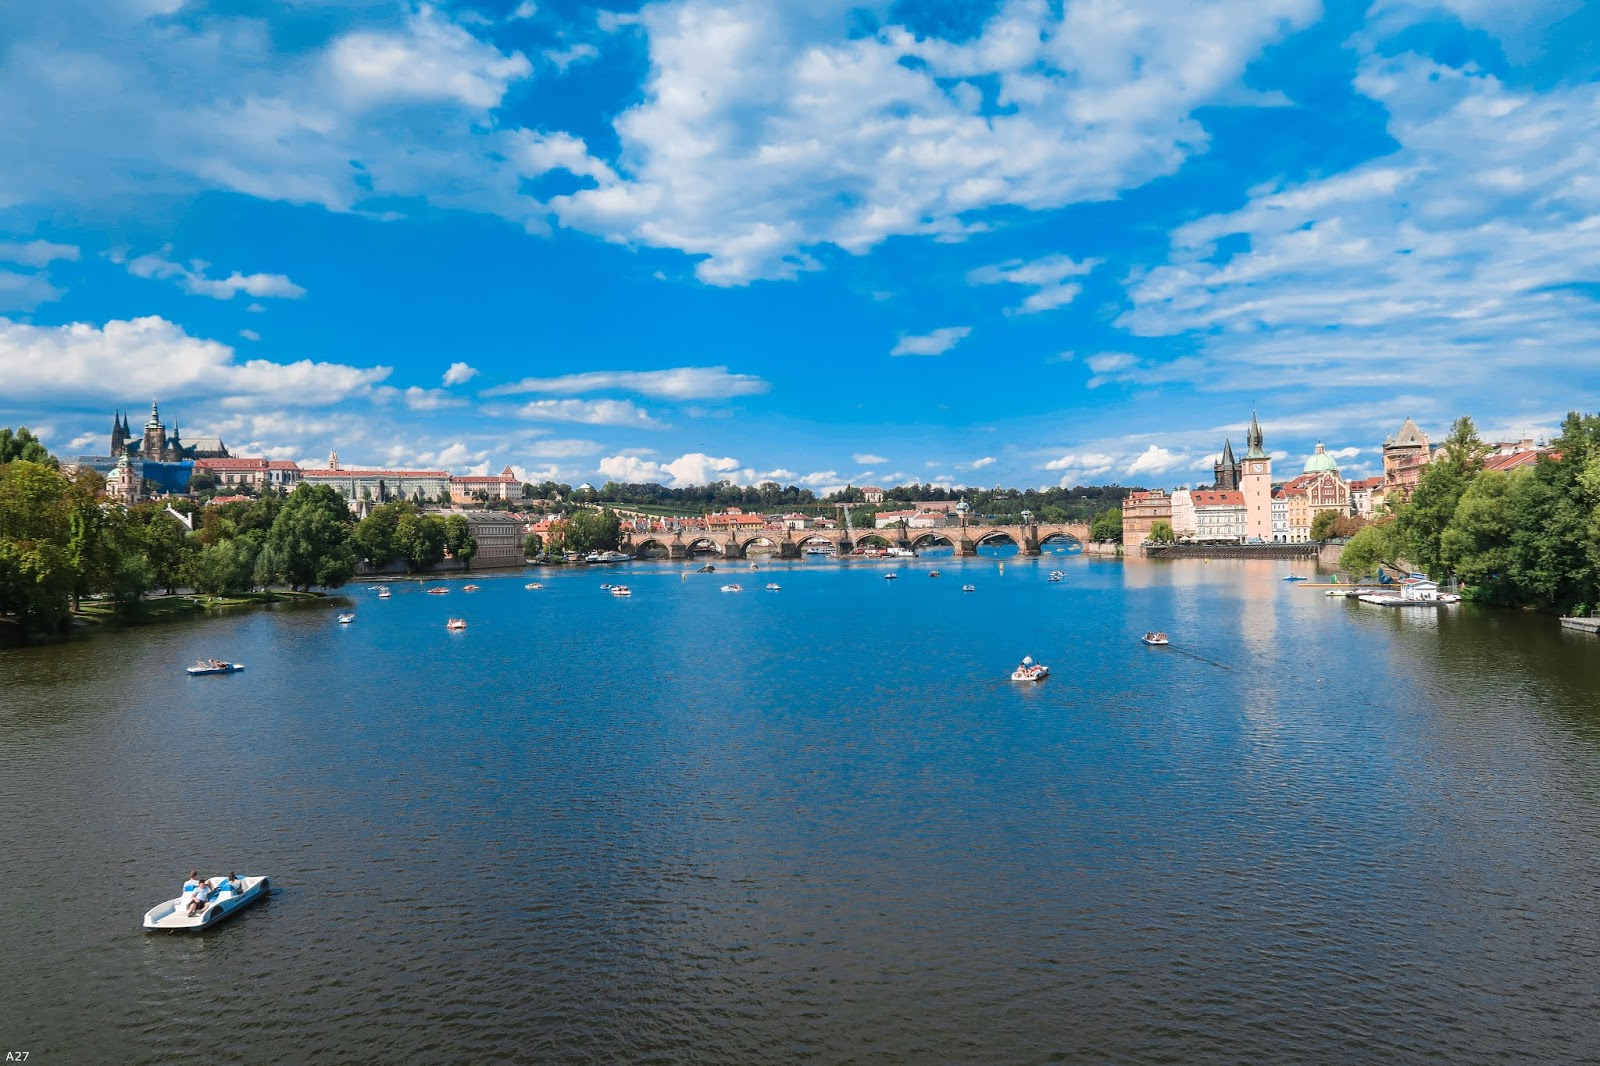 PRAGUE BRIDGE VIEW | ANNA TWENTY SEVEN